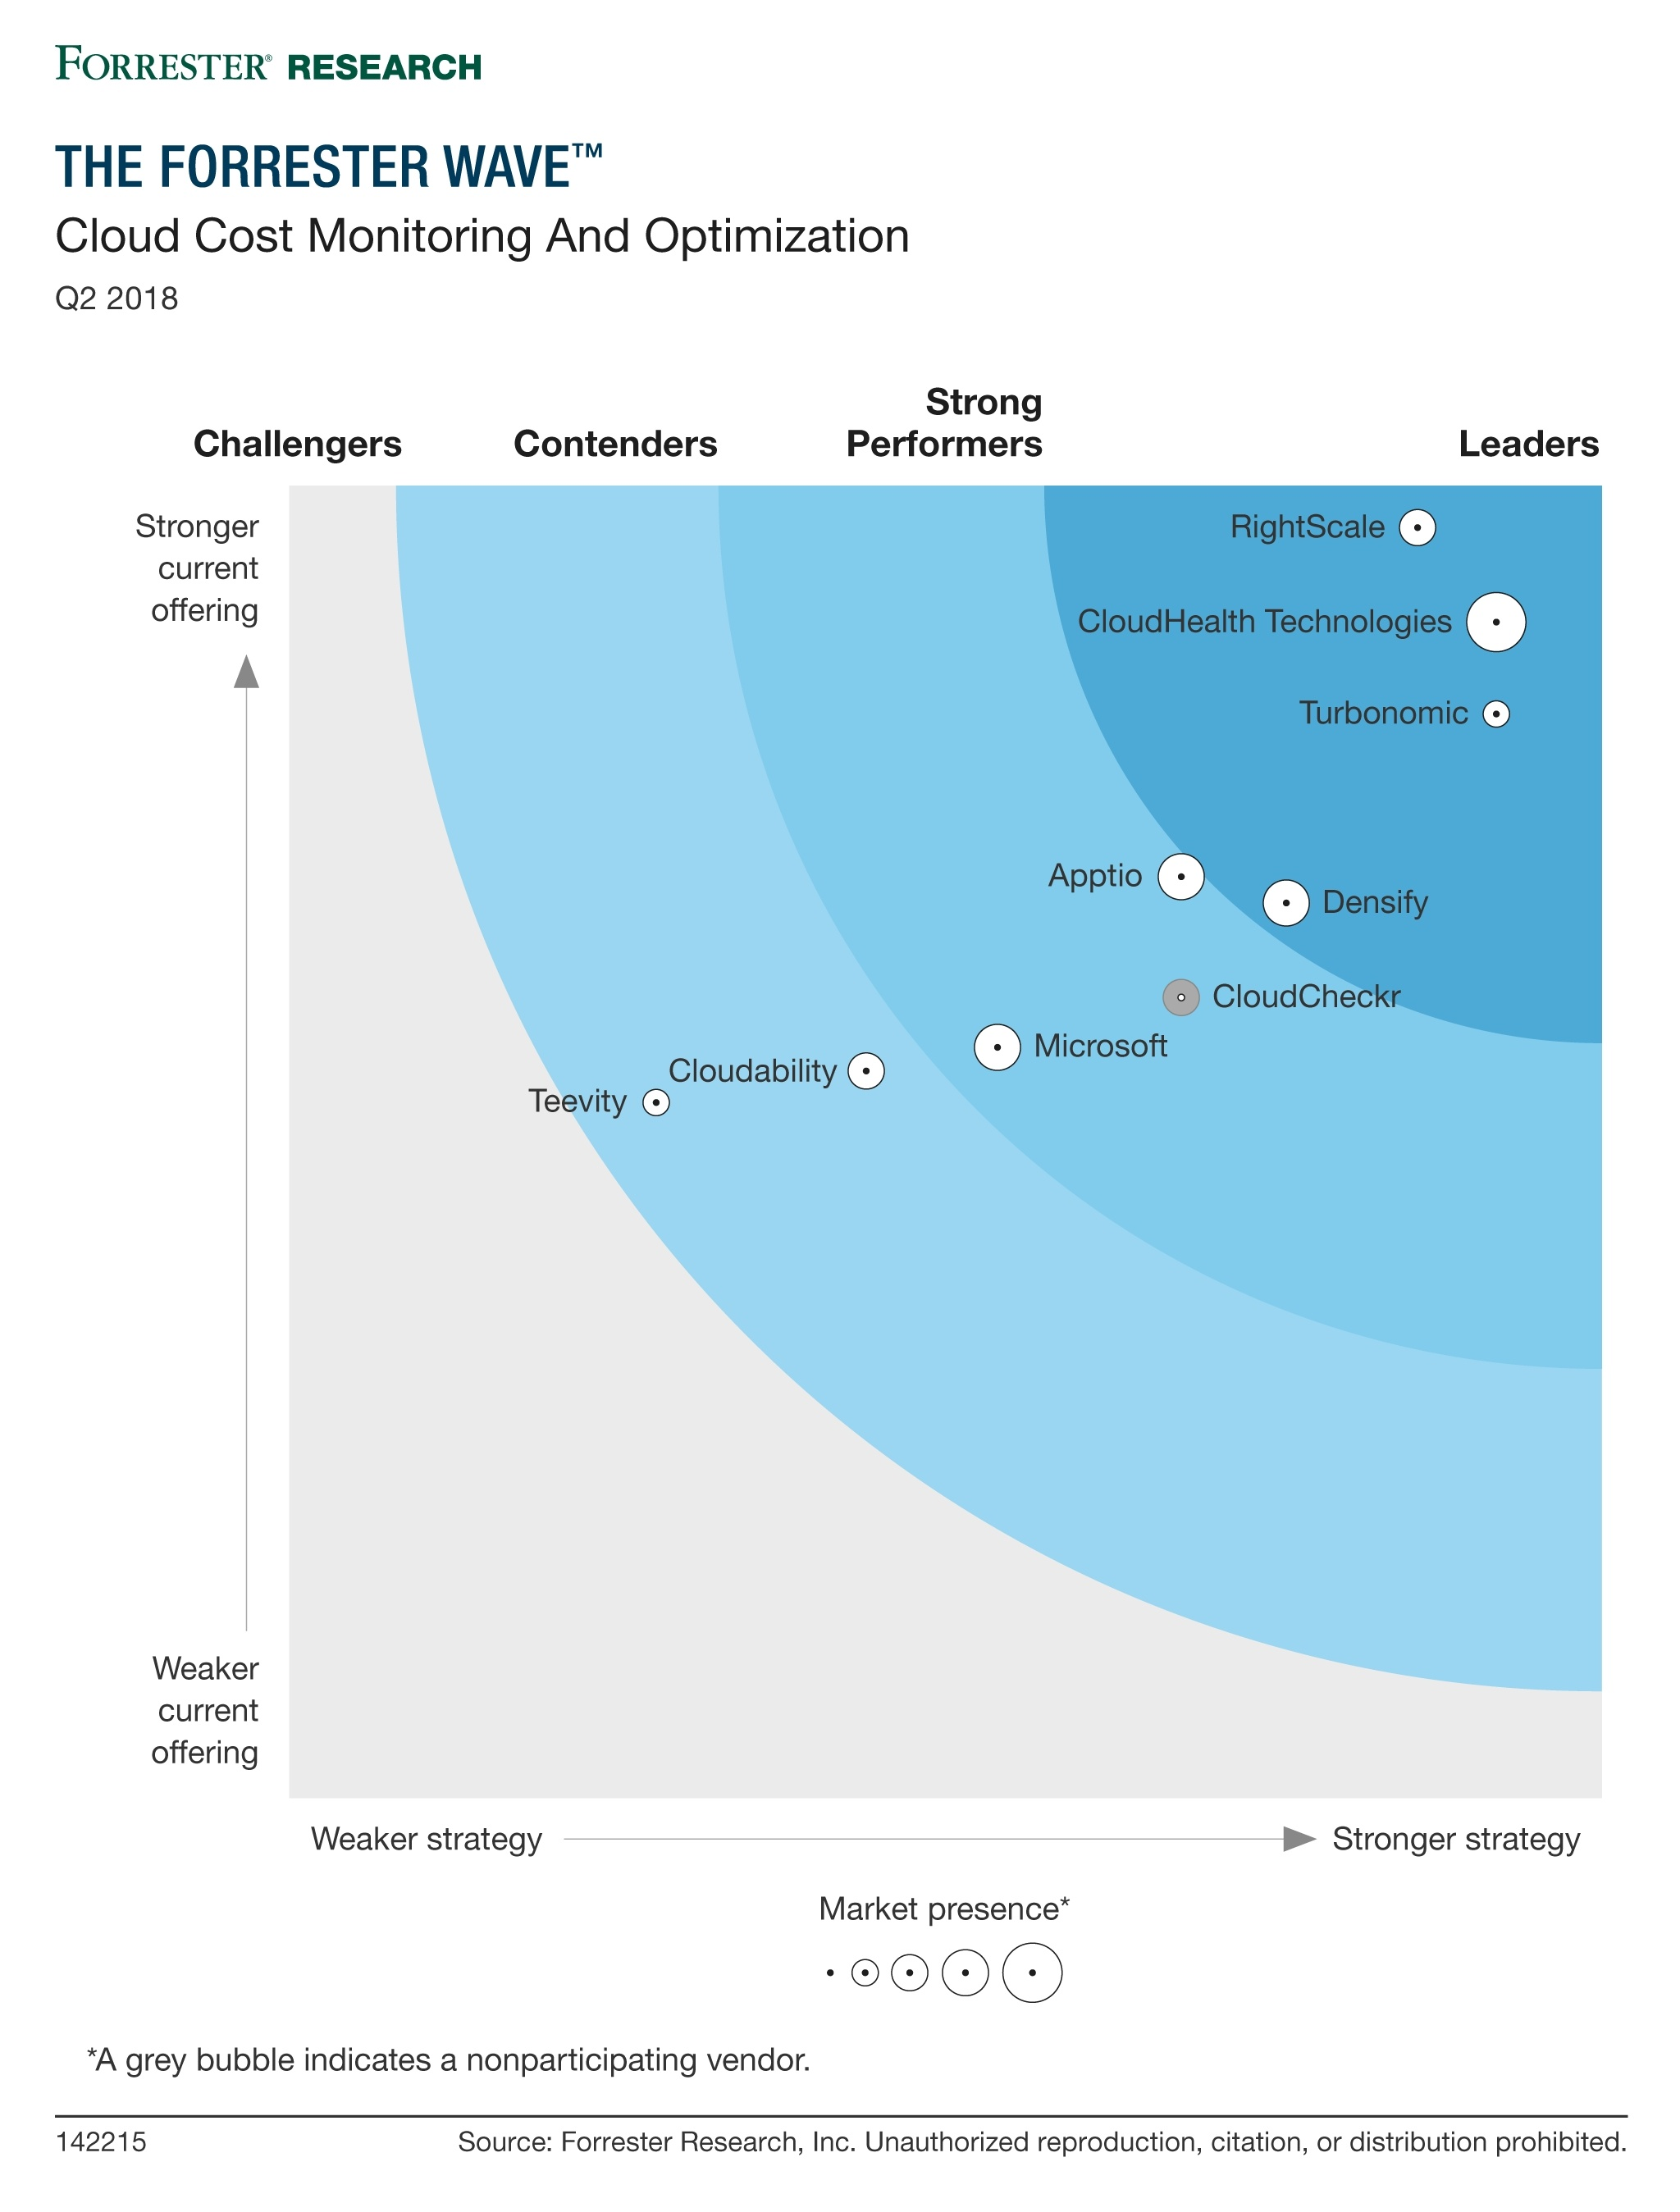 The Forrester Wave: Cloud Cost Monitoring and Optimization